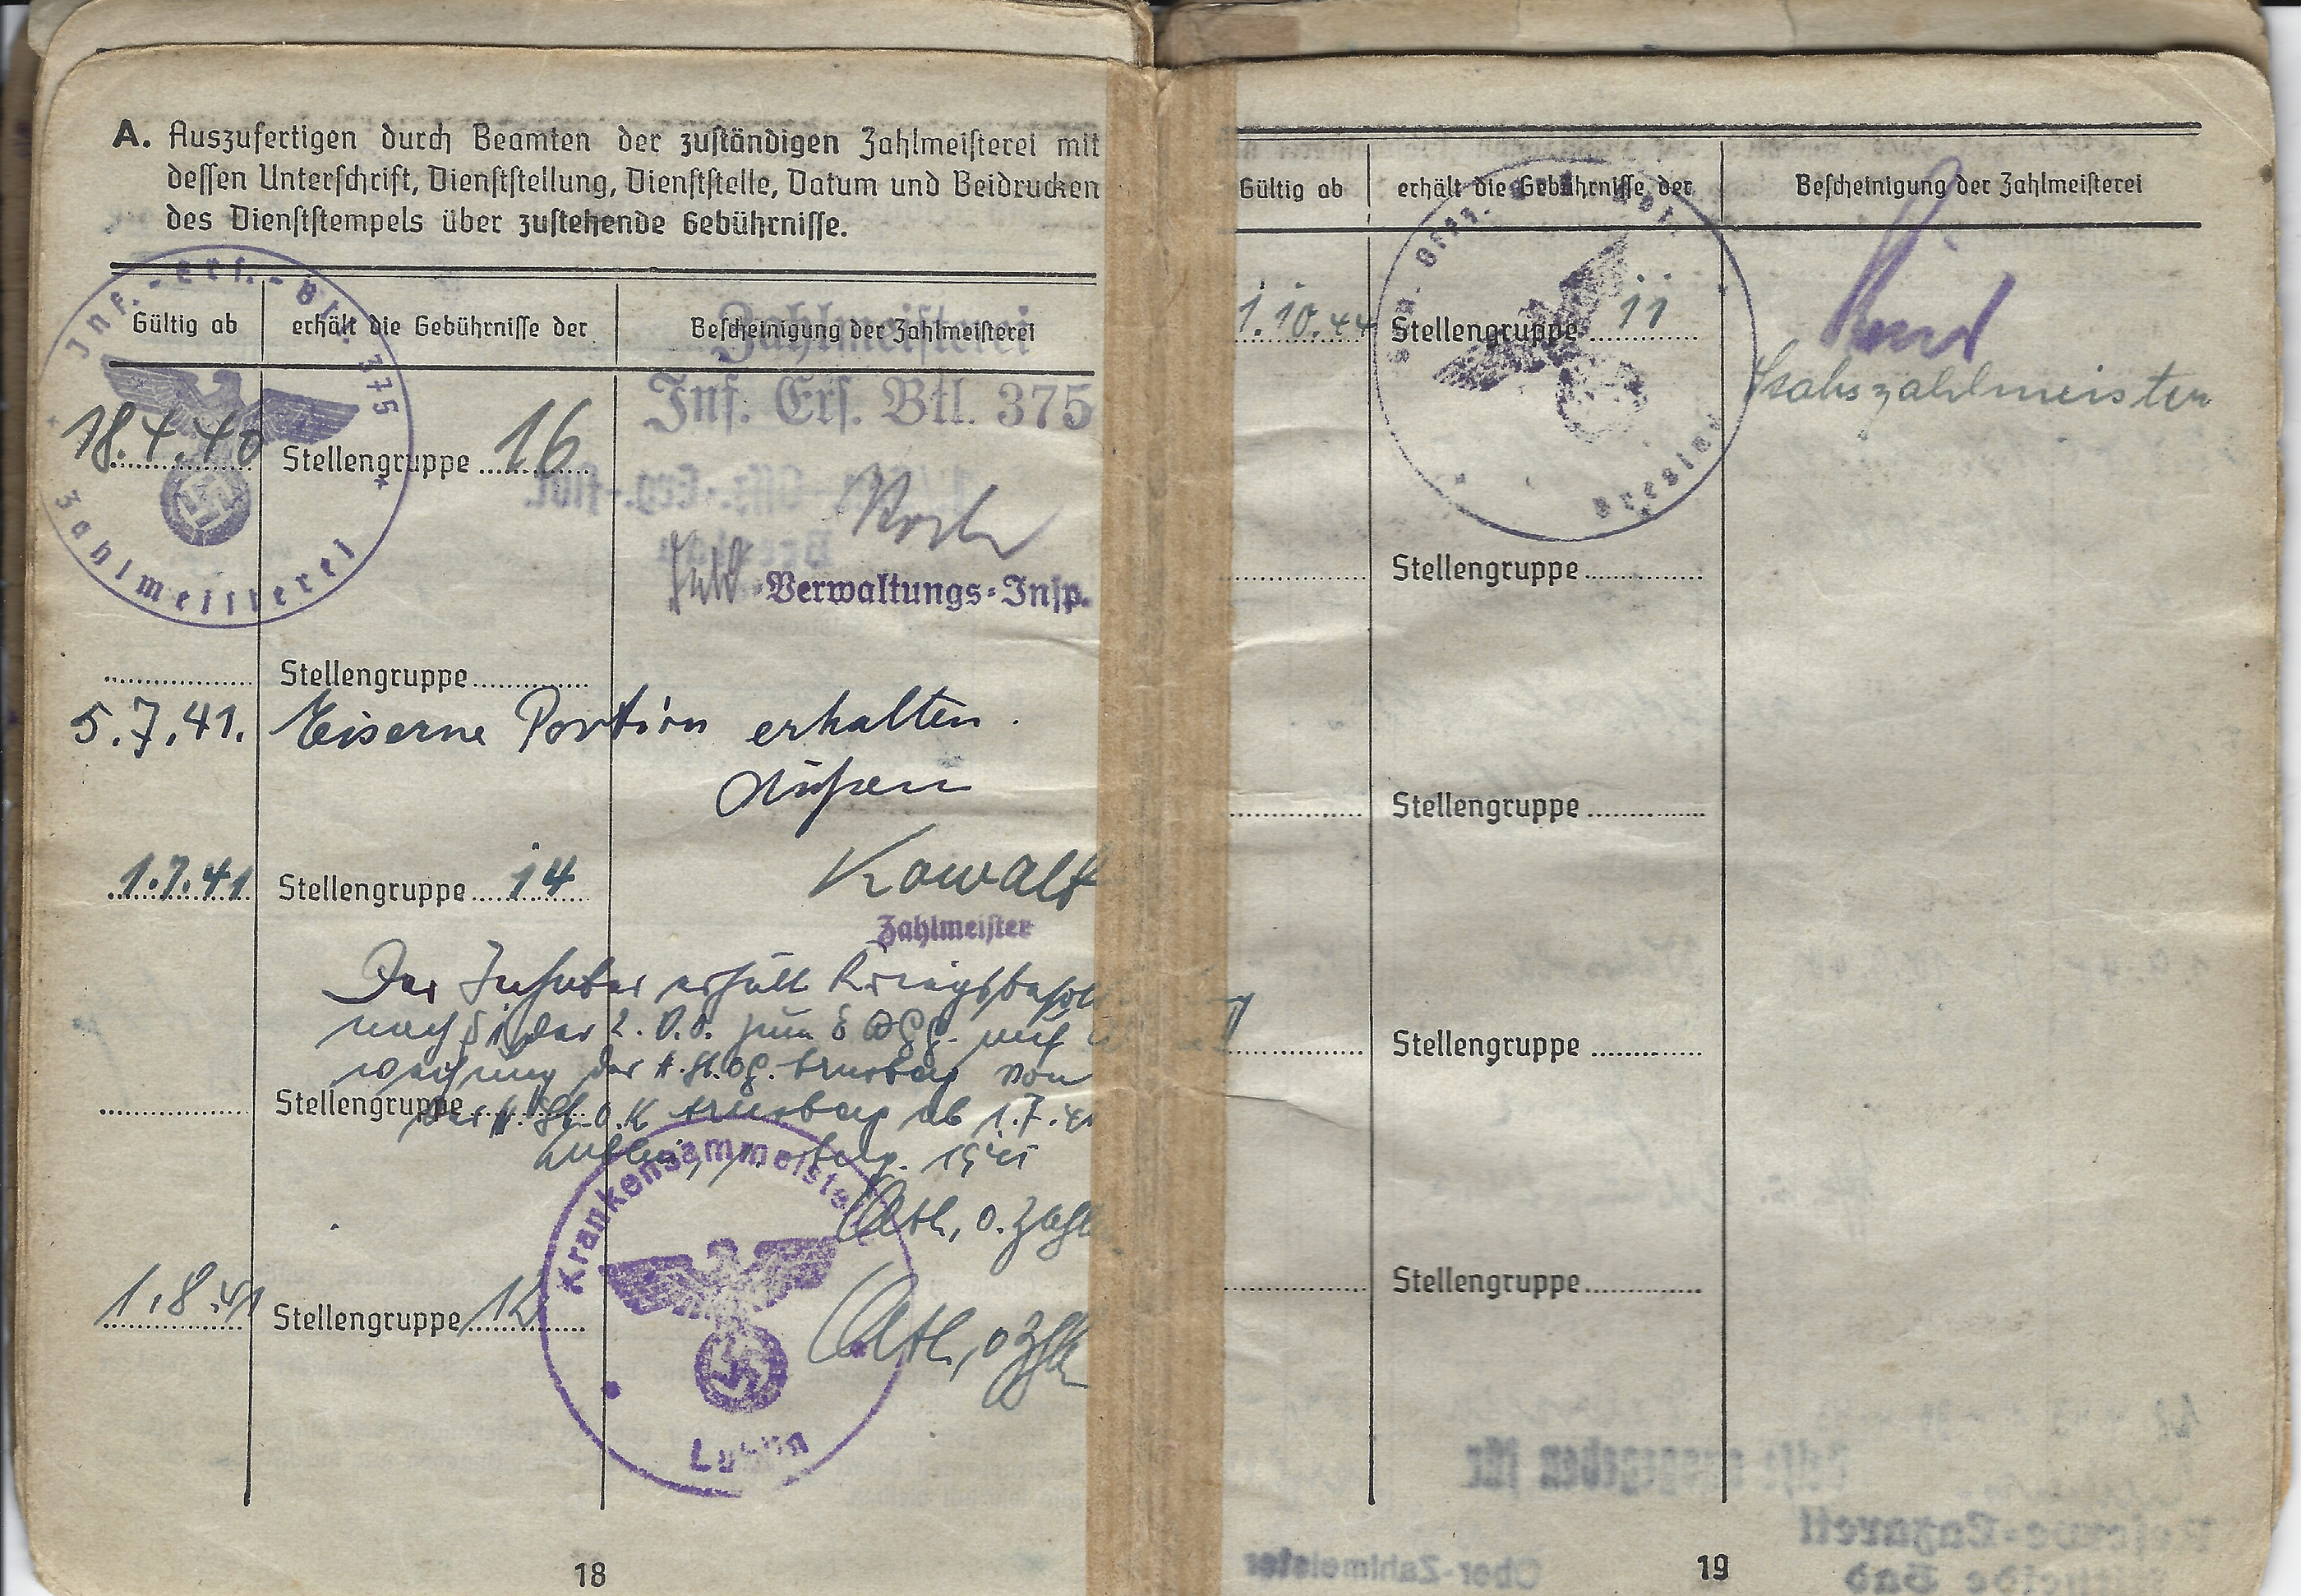 This soldier's pay groups correspond with his rank on the given dates, also note an iron ration was entered here in 1941